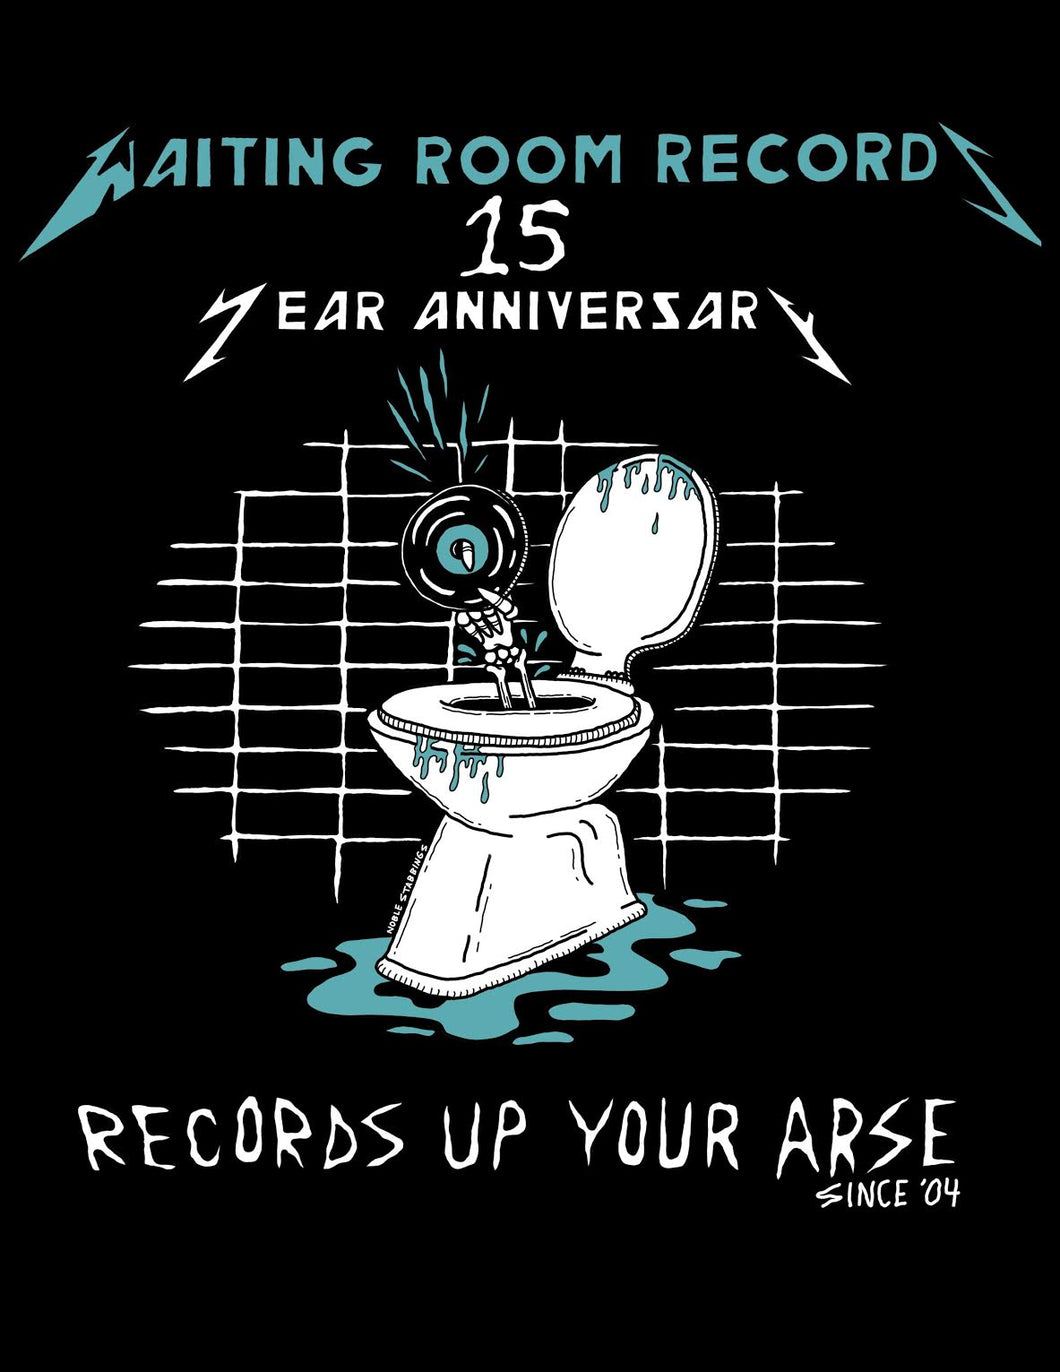 Waiting Room Records 15th Anniversary T-shirt-